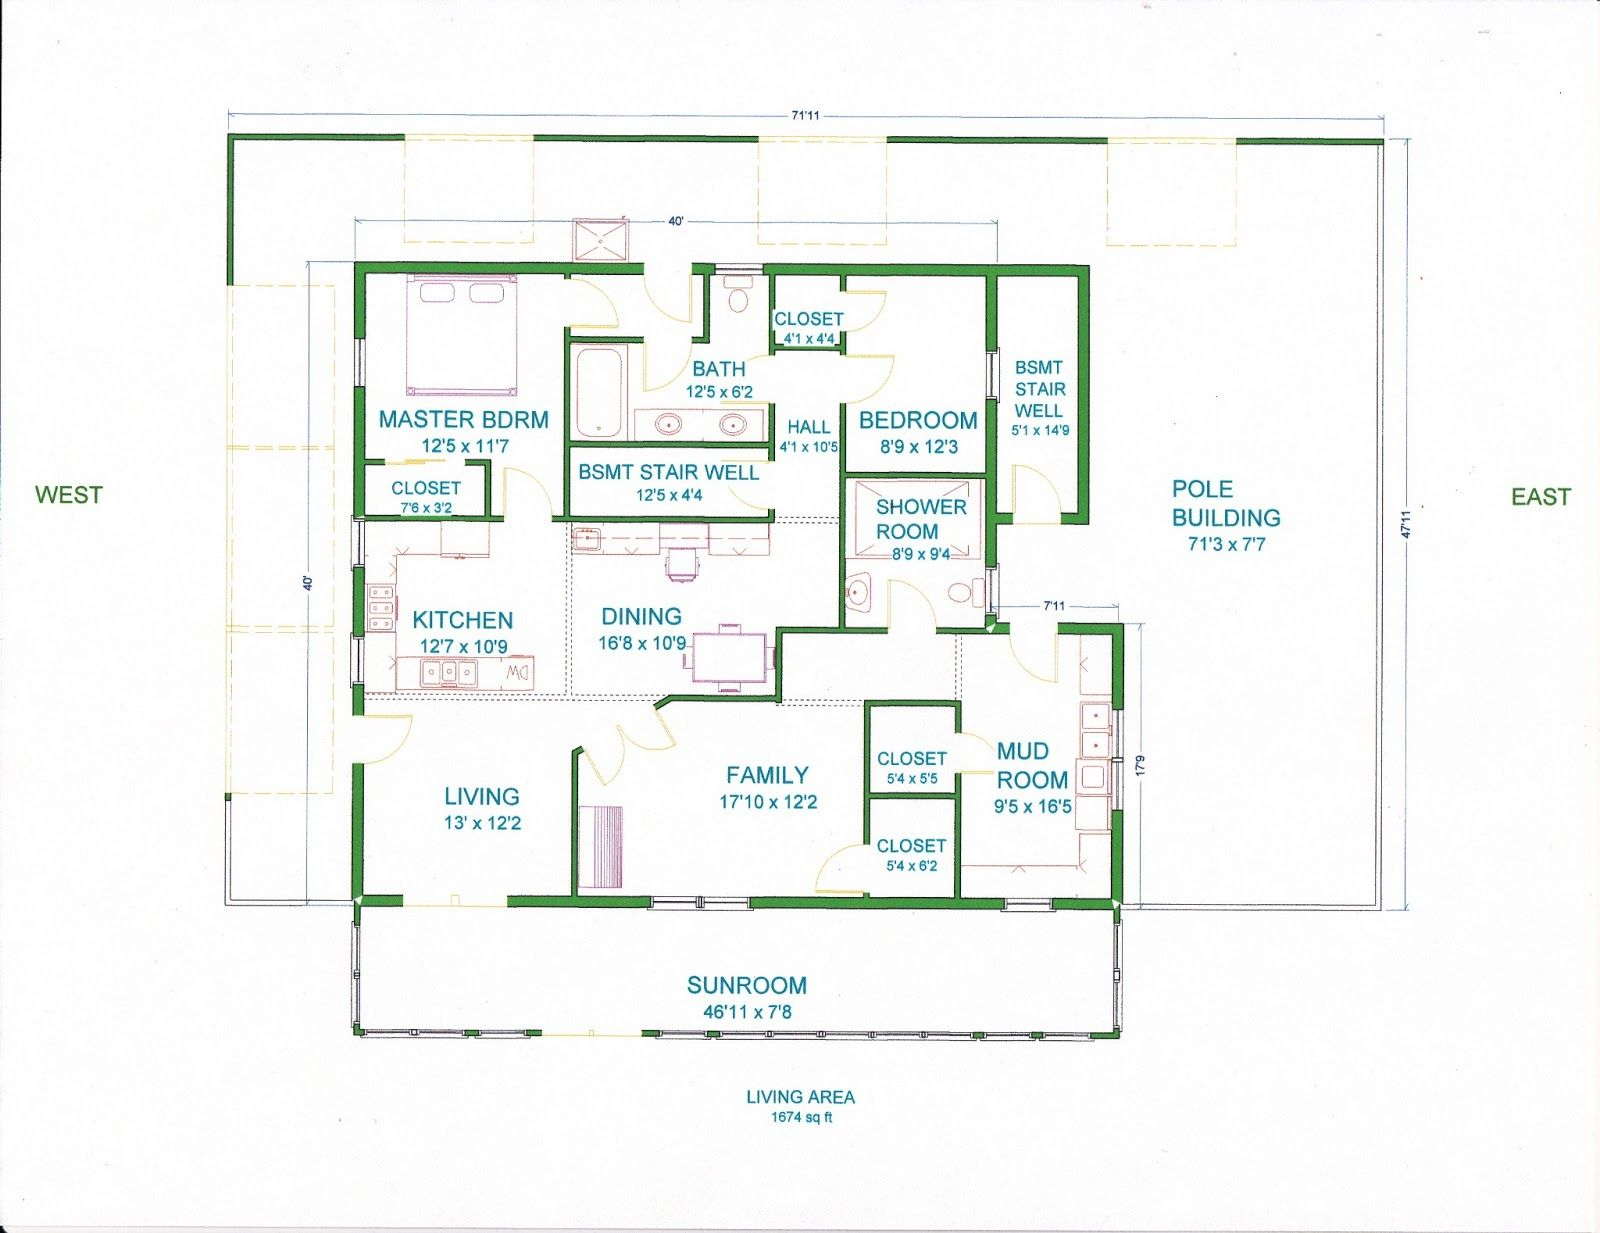 6 bedroom pole barn house free download wiring diagram for Design your own pole barn online